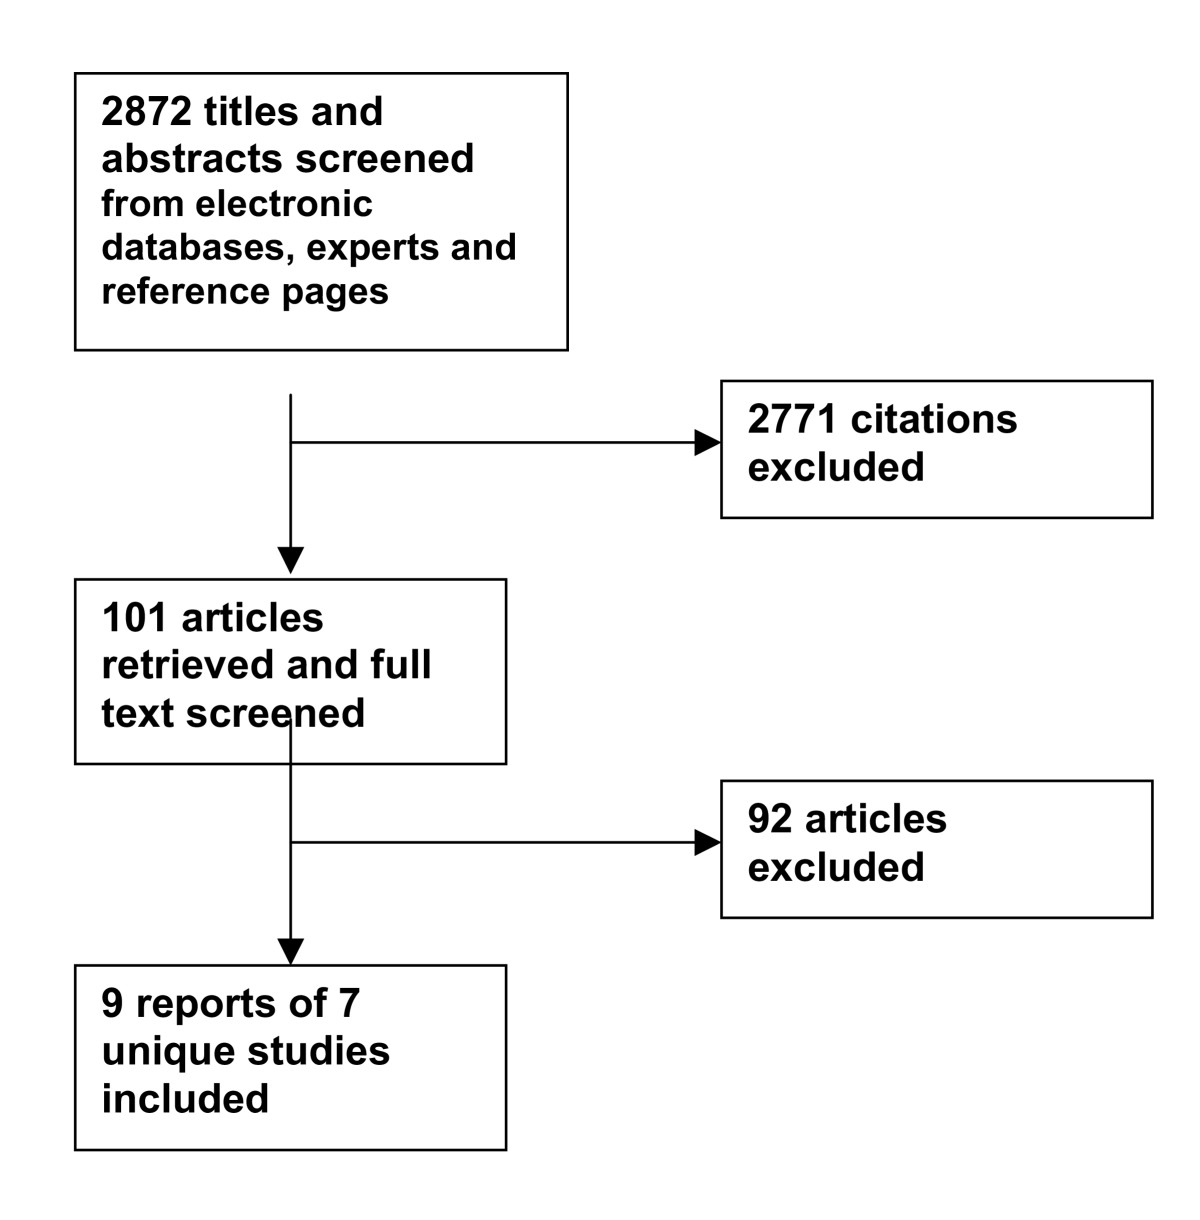 http://static-content.springer.com/image/art%3A10.1186%2F1475-2891-4-13/MediaObjects/12937_2004_Article_60_Fig1_HTML.jpg